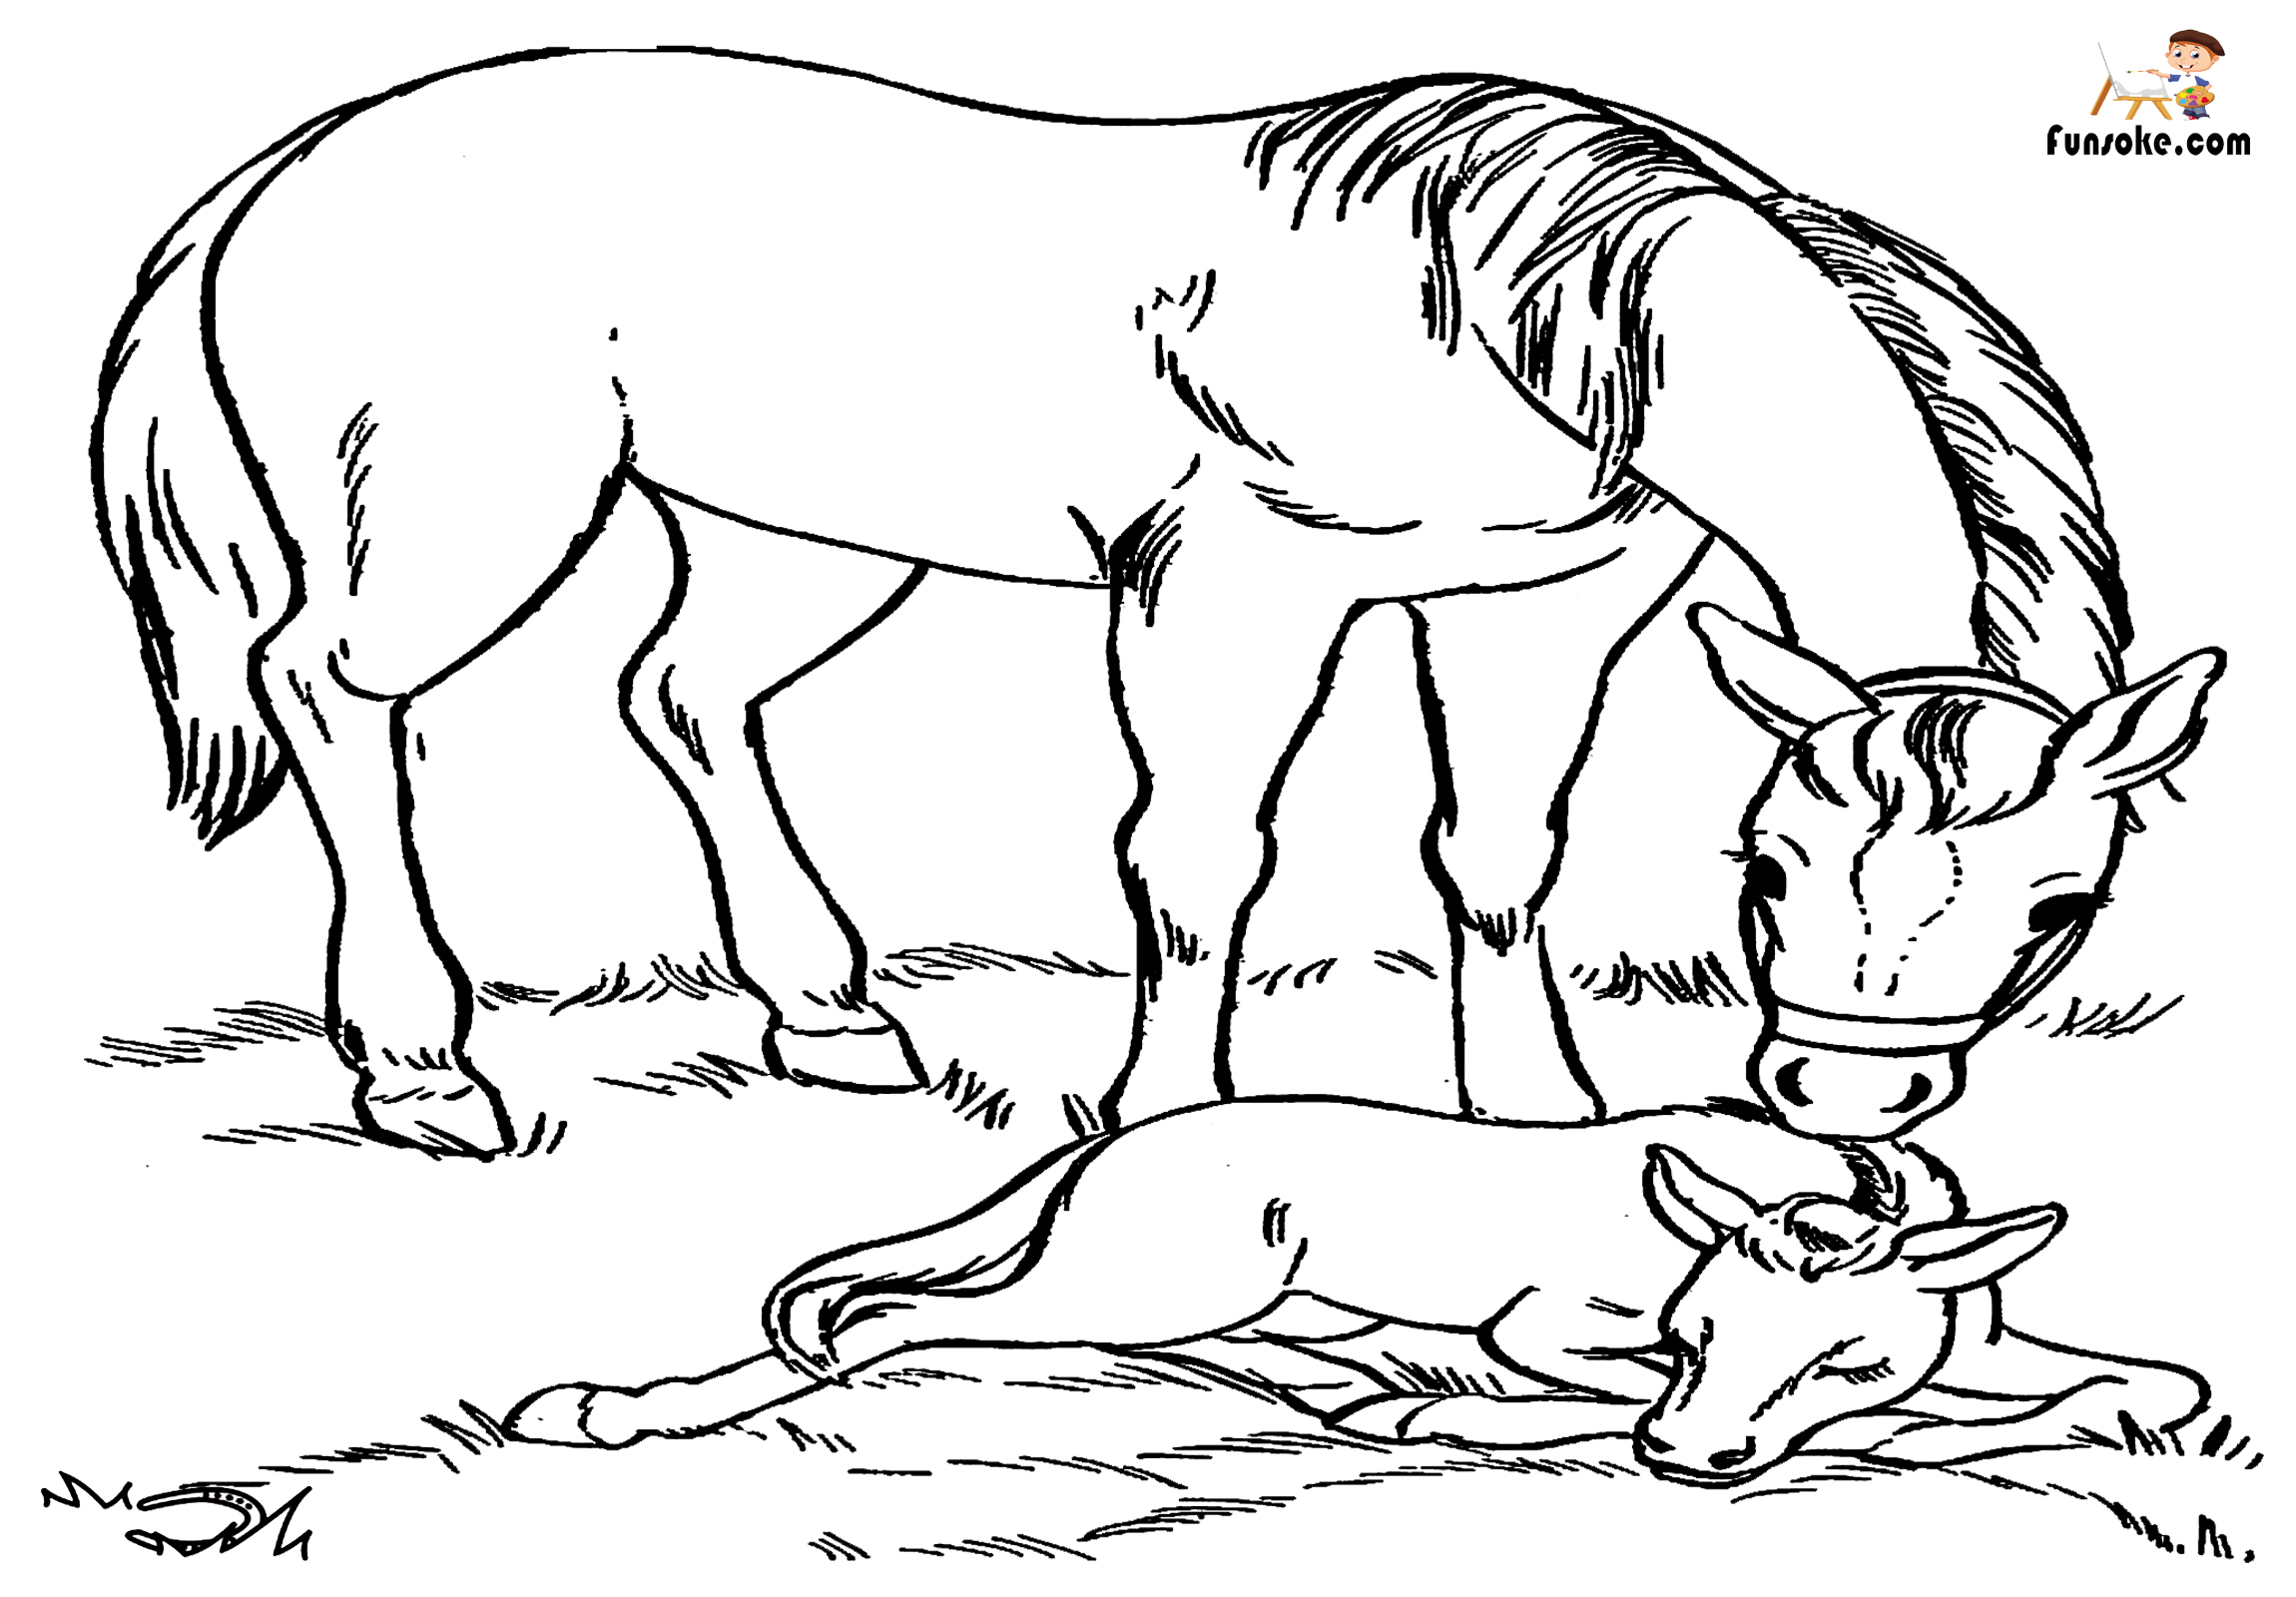 horse coloring free printable horse coloring pages for kids funsoke coloring horse